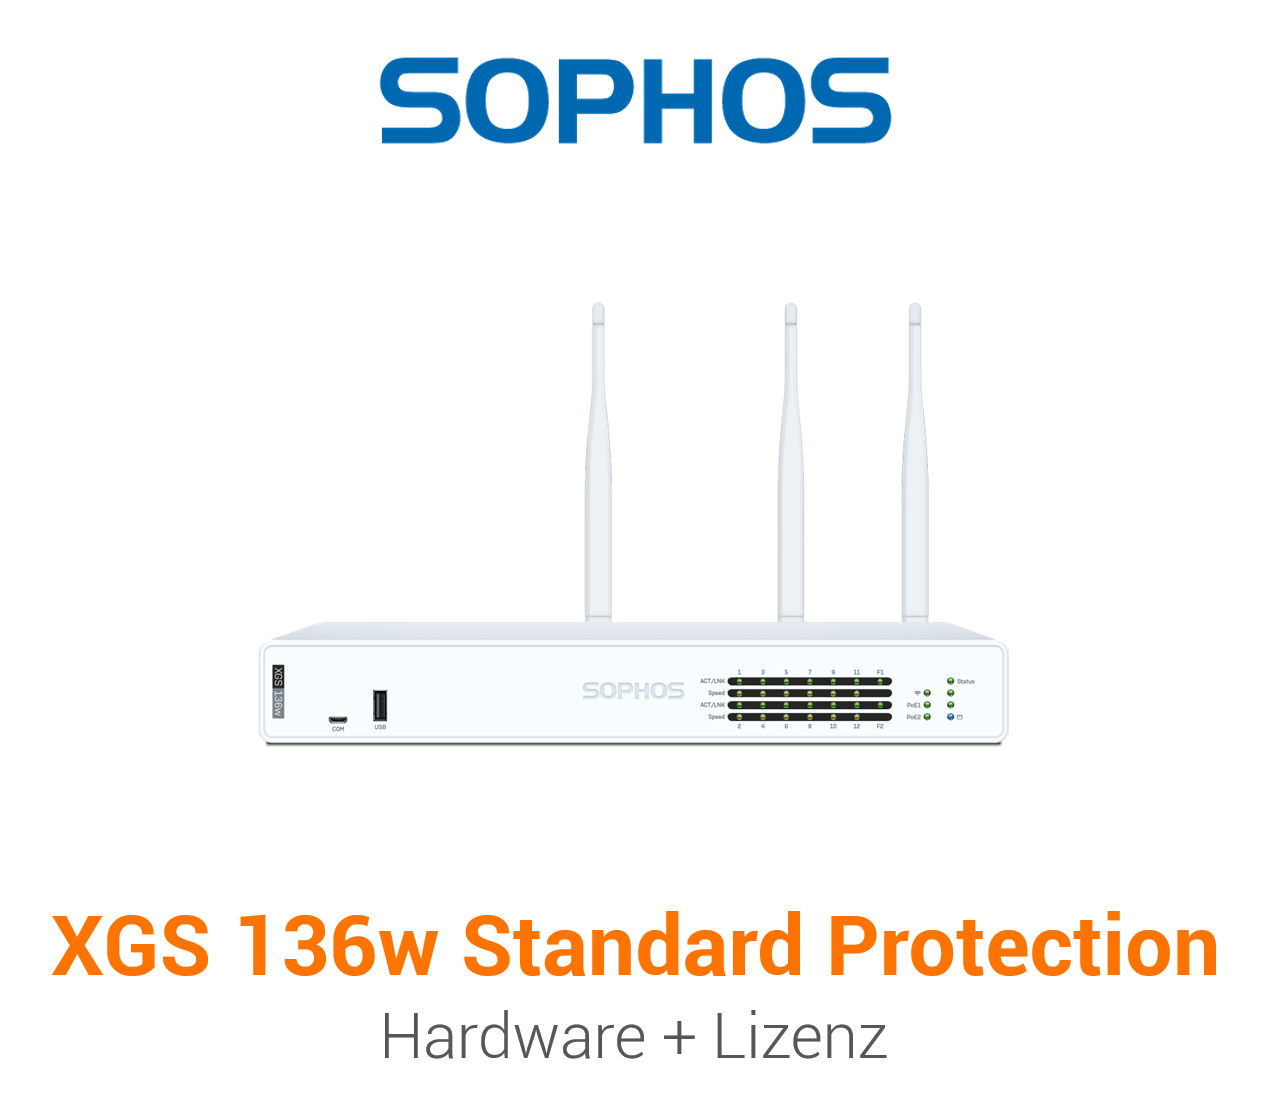 Sophos XGS 136w mit Standard Protection